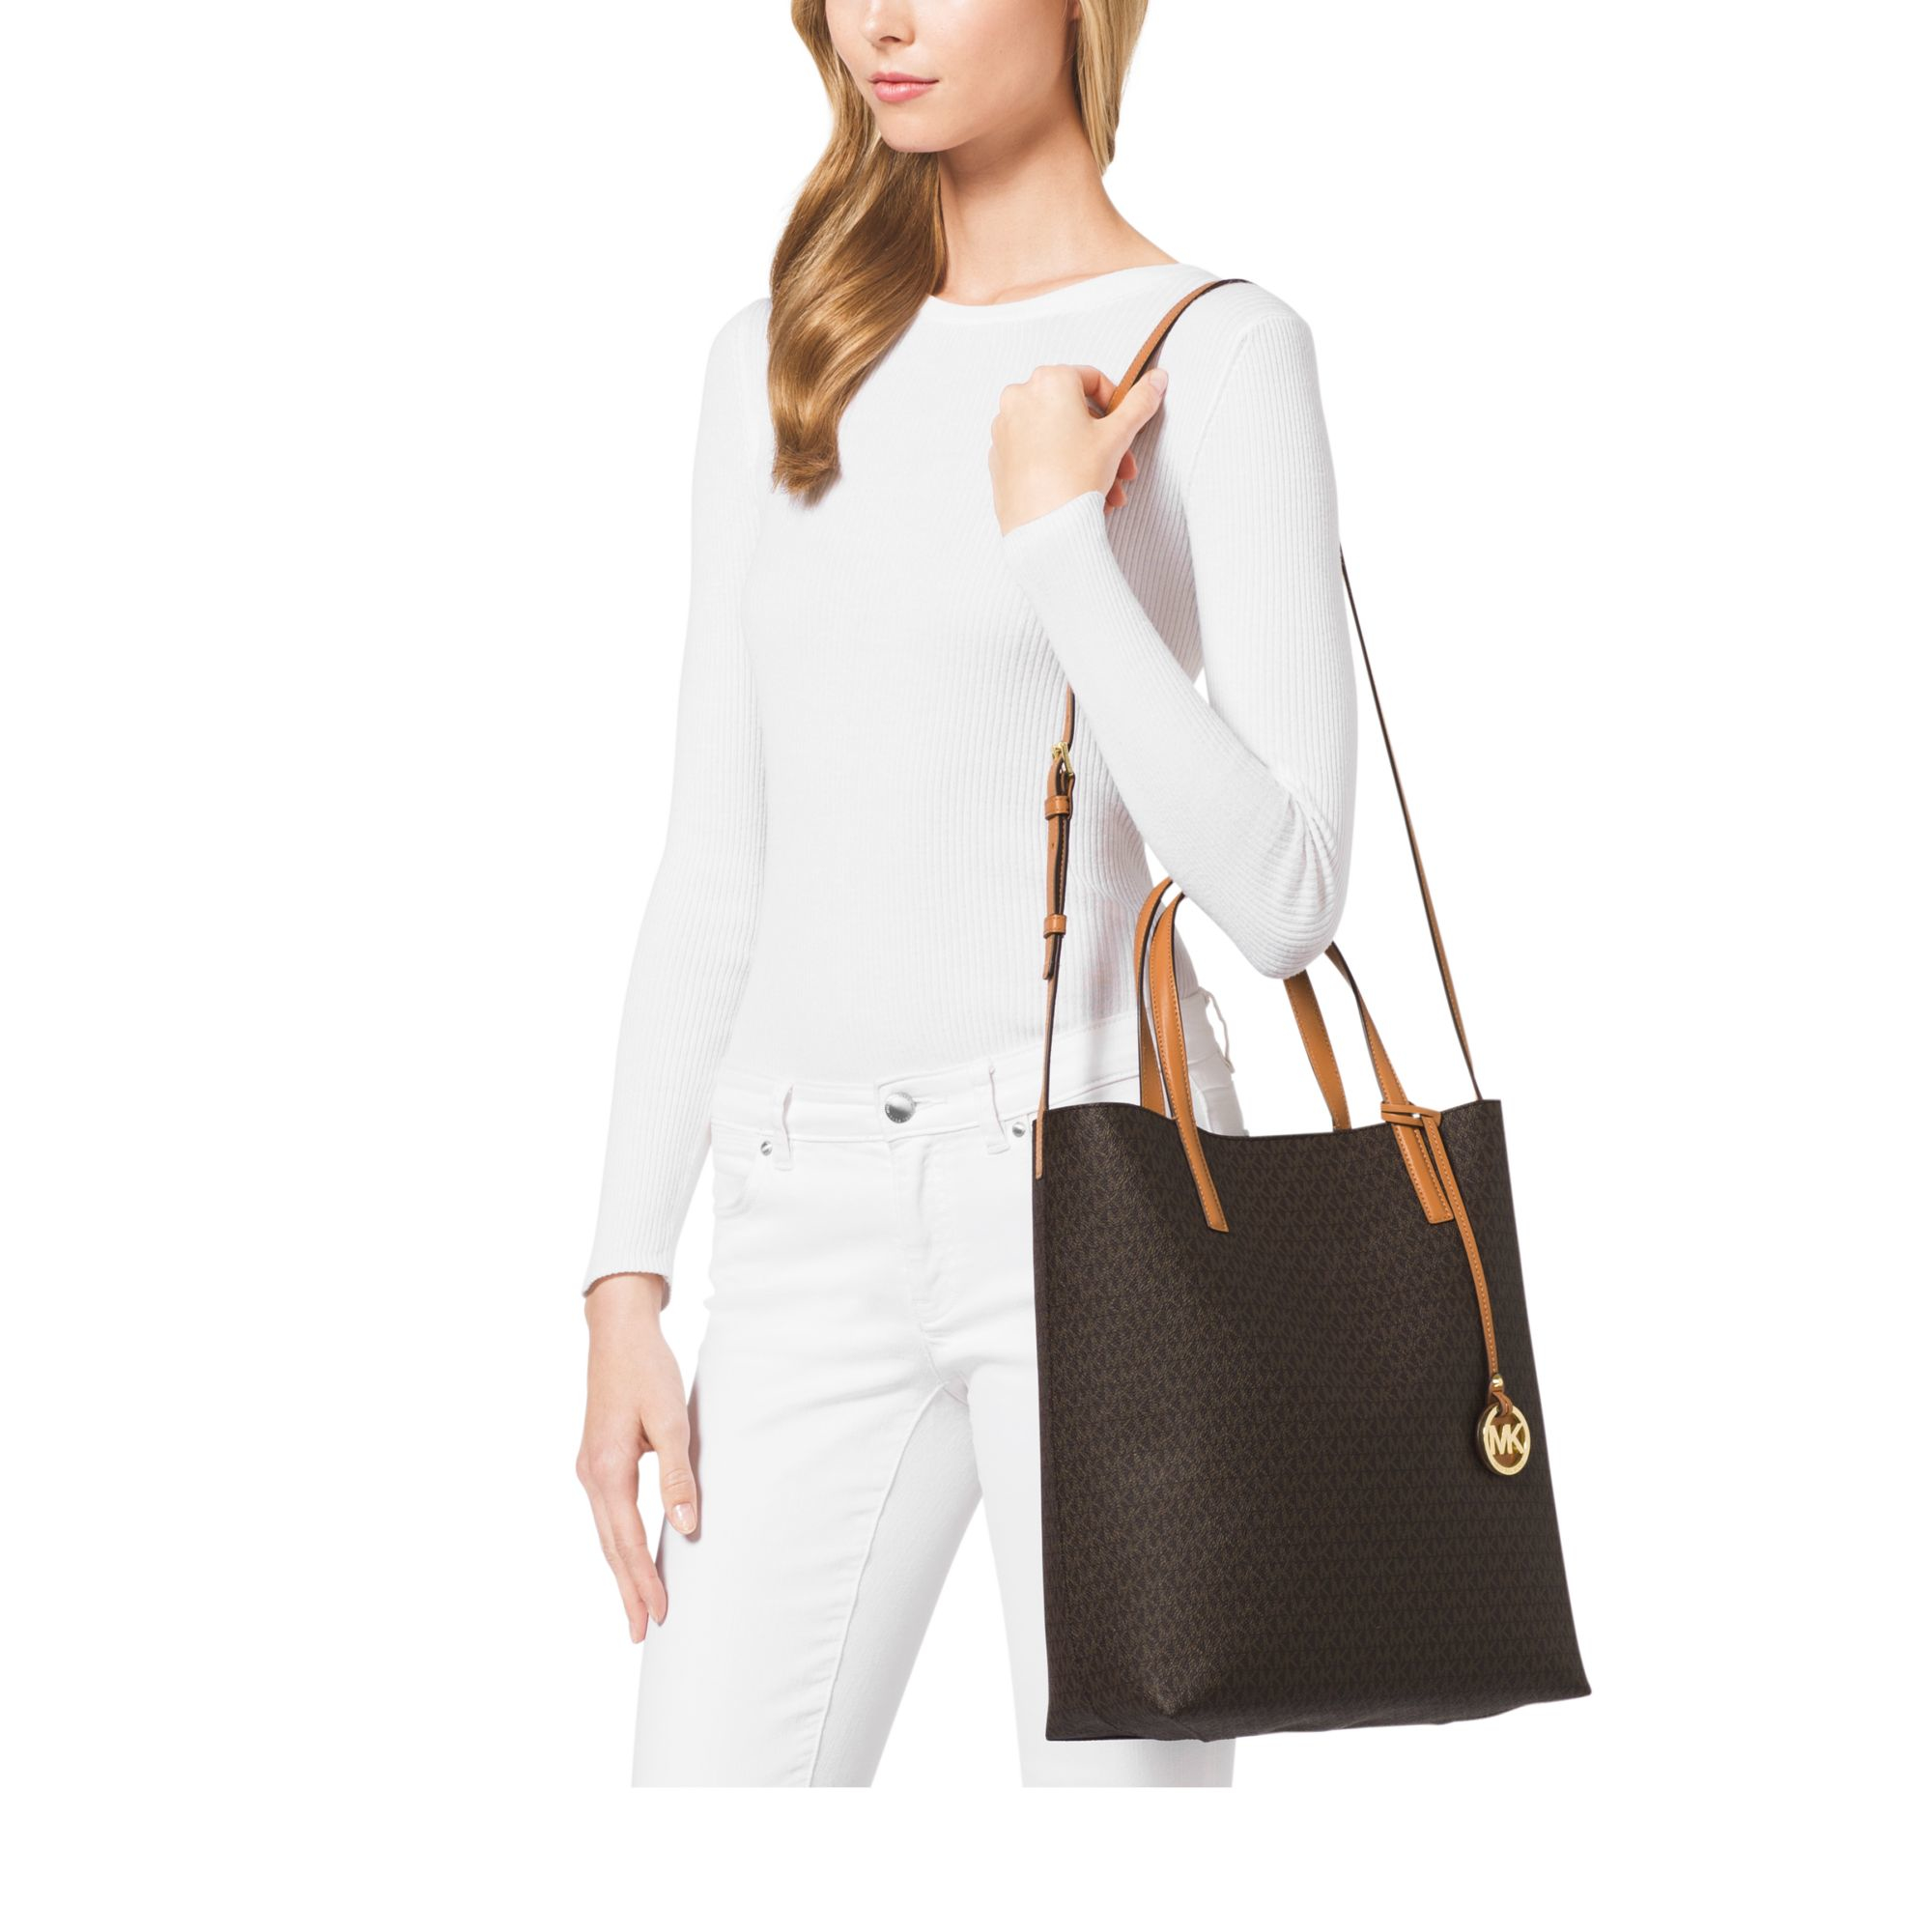 Lyst - Michael Kors Hayley Large Tote in Brown 1989a5ff39e85